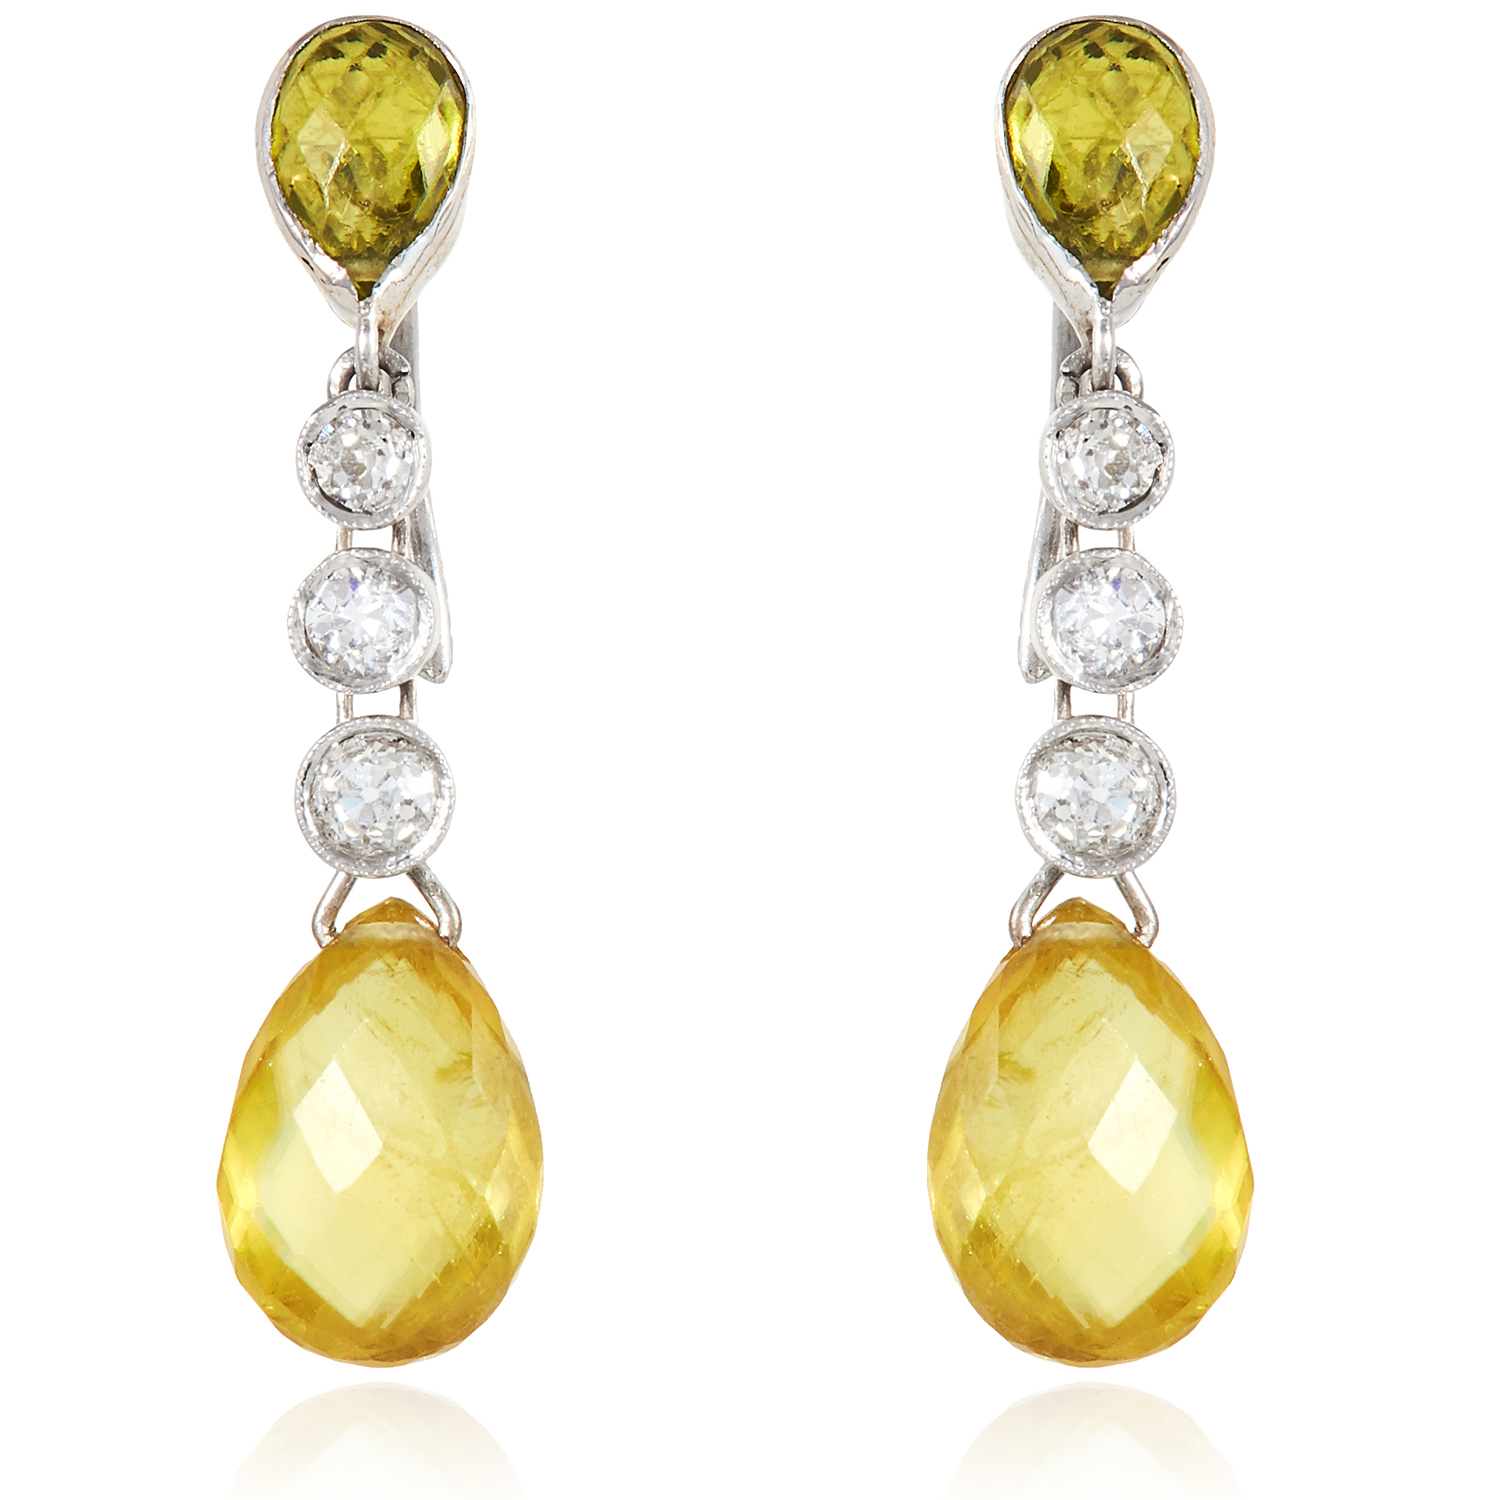 Los 15 - A PAIR OF PERIDOT AND DIAMOND DROP EARRINGS in white gold or platinum, each set with a briolette cut